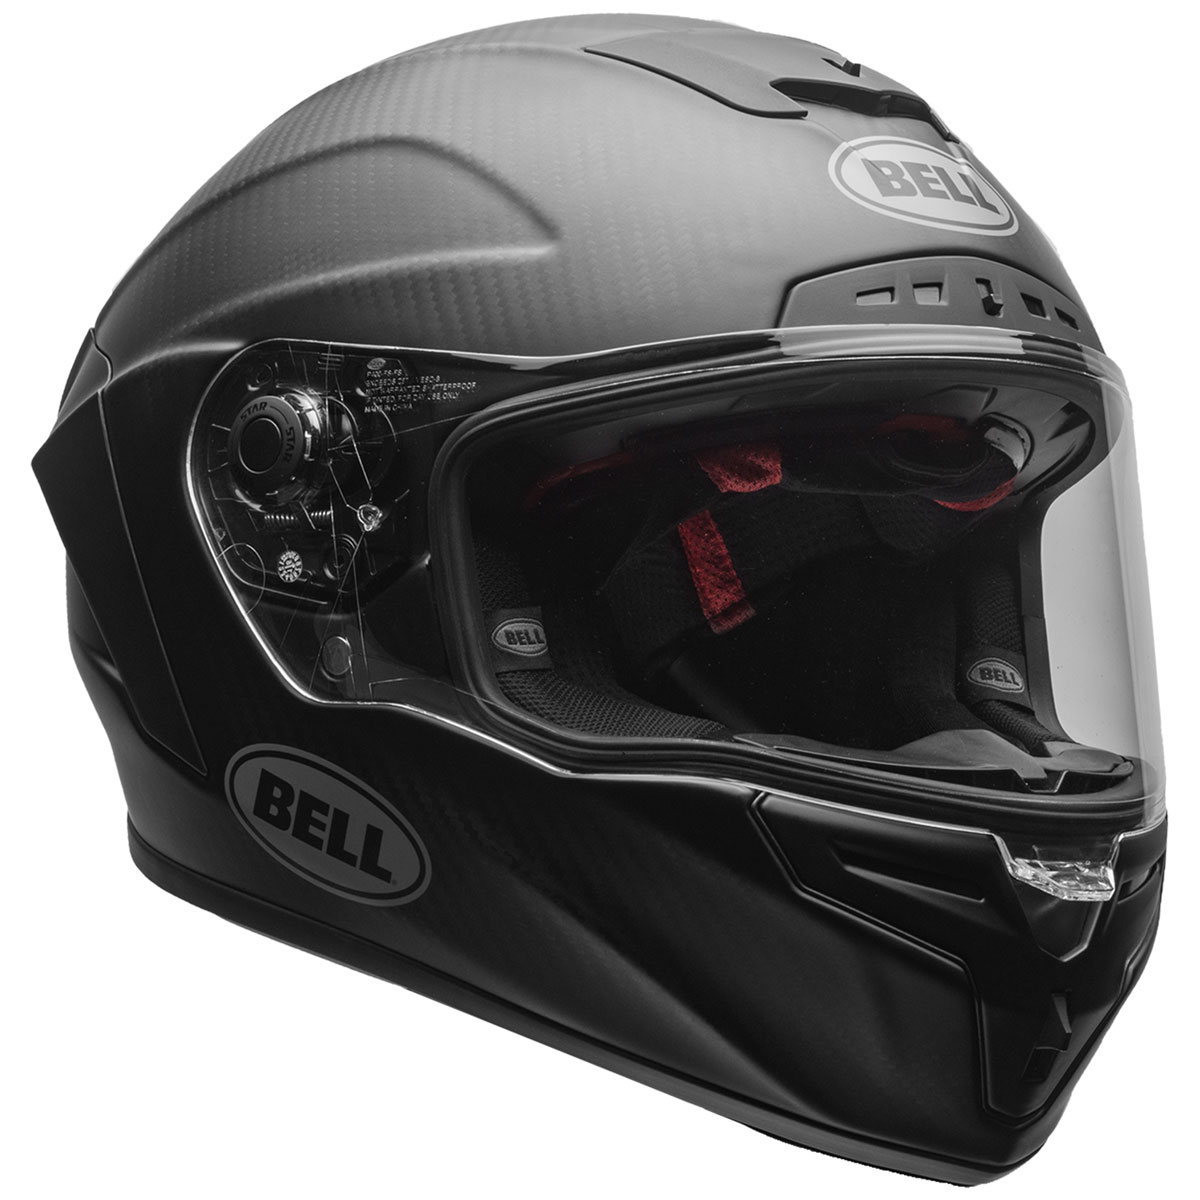 Bell Full Face Helmet >> Bell Race Star Flex Dlx Matte Black Full Face Helmet 7108093